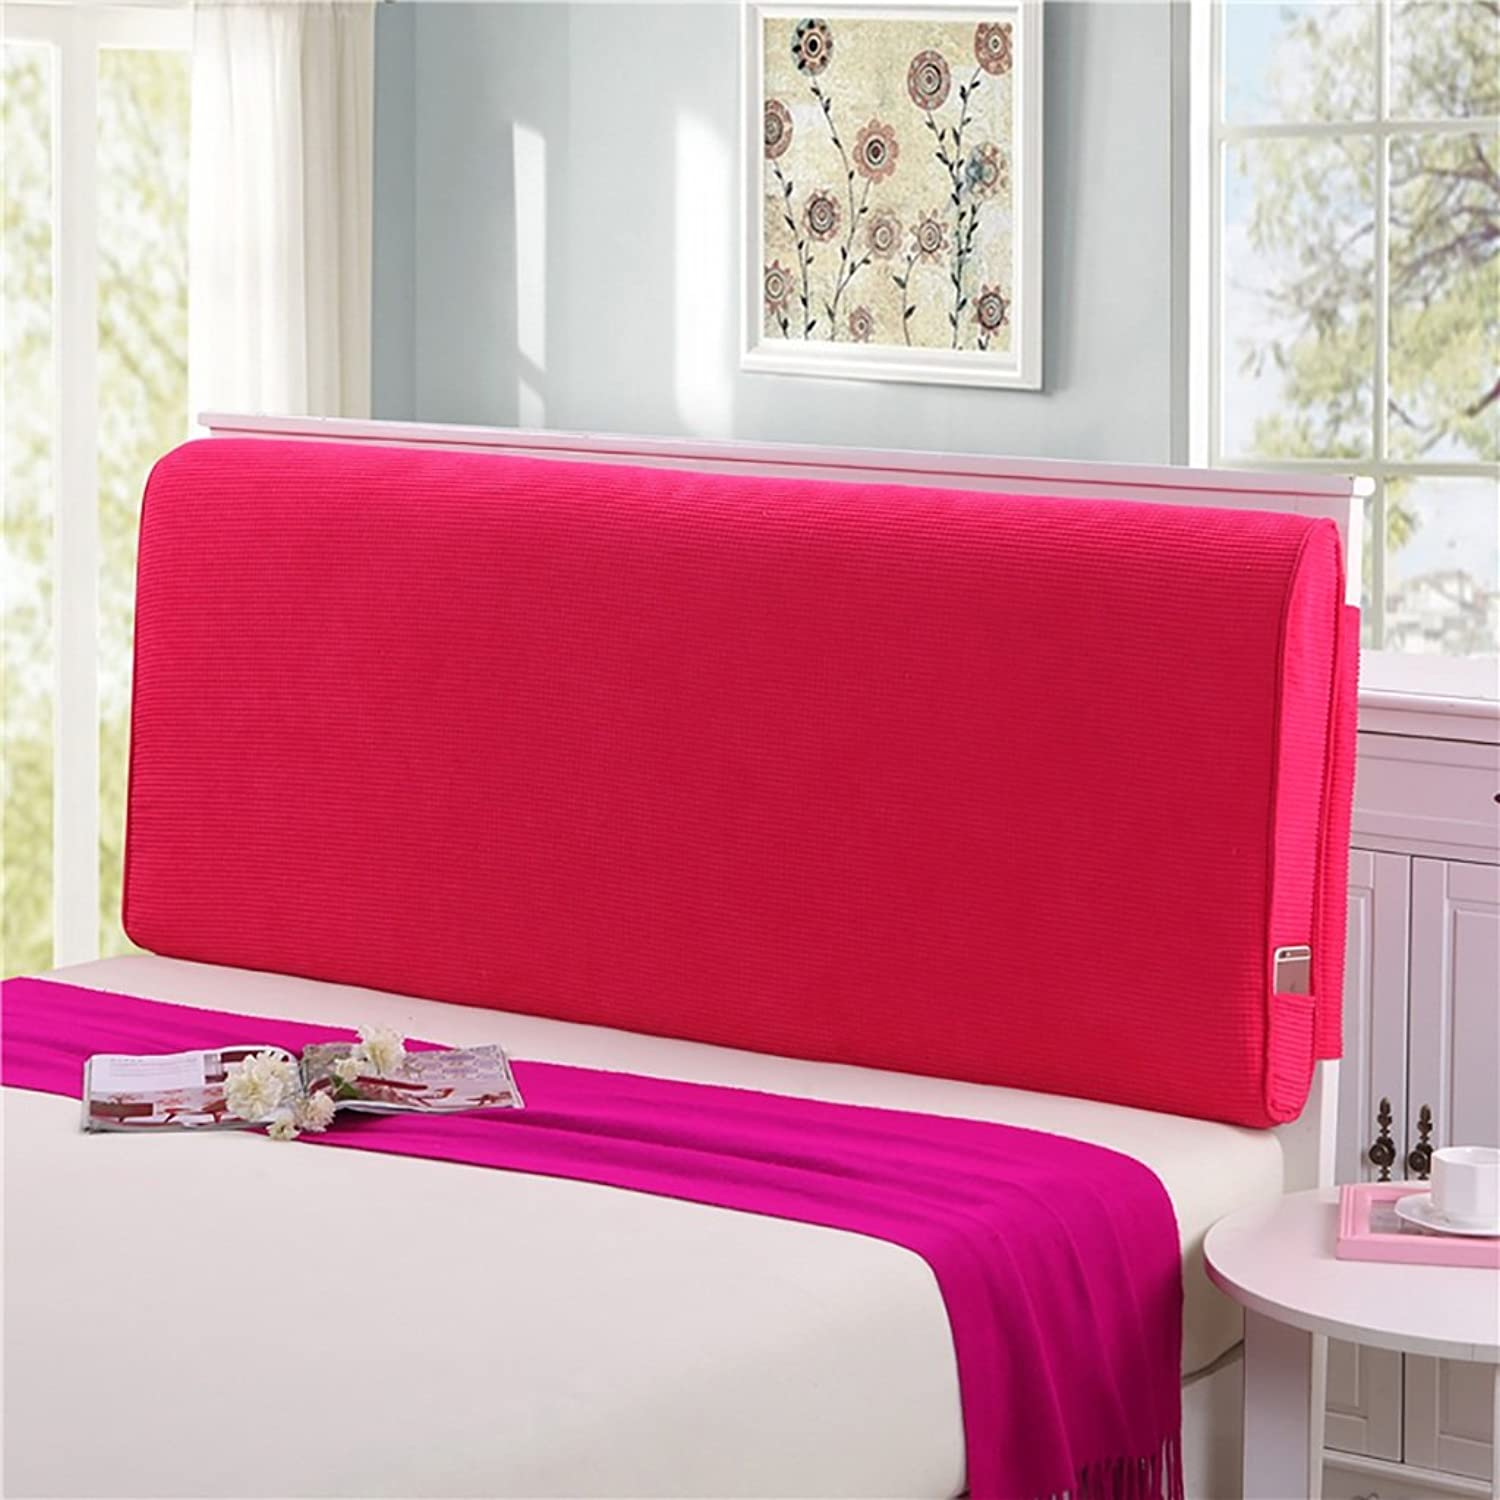 Headboard Bed Backrest Cushion Bed Cushion Bedside Pillow No Headboard Corn Large Soft Pillow Lumbar Support Detachable 9 Solid colors 4